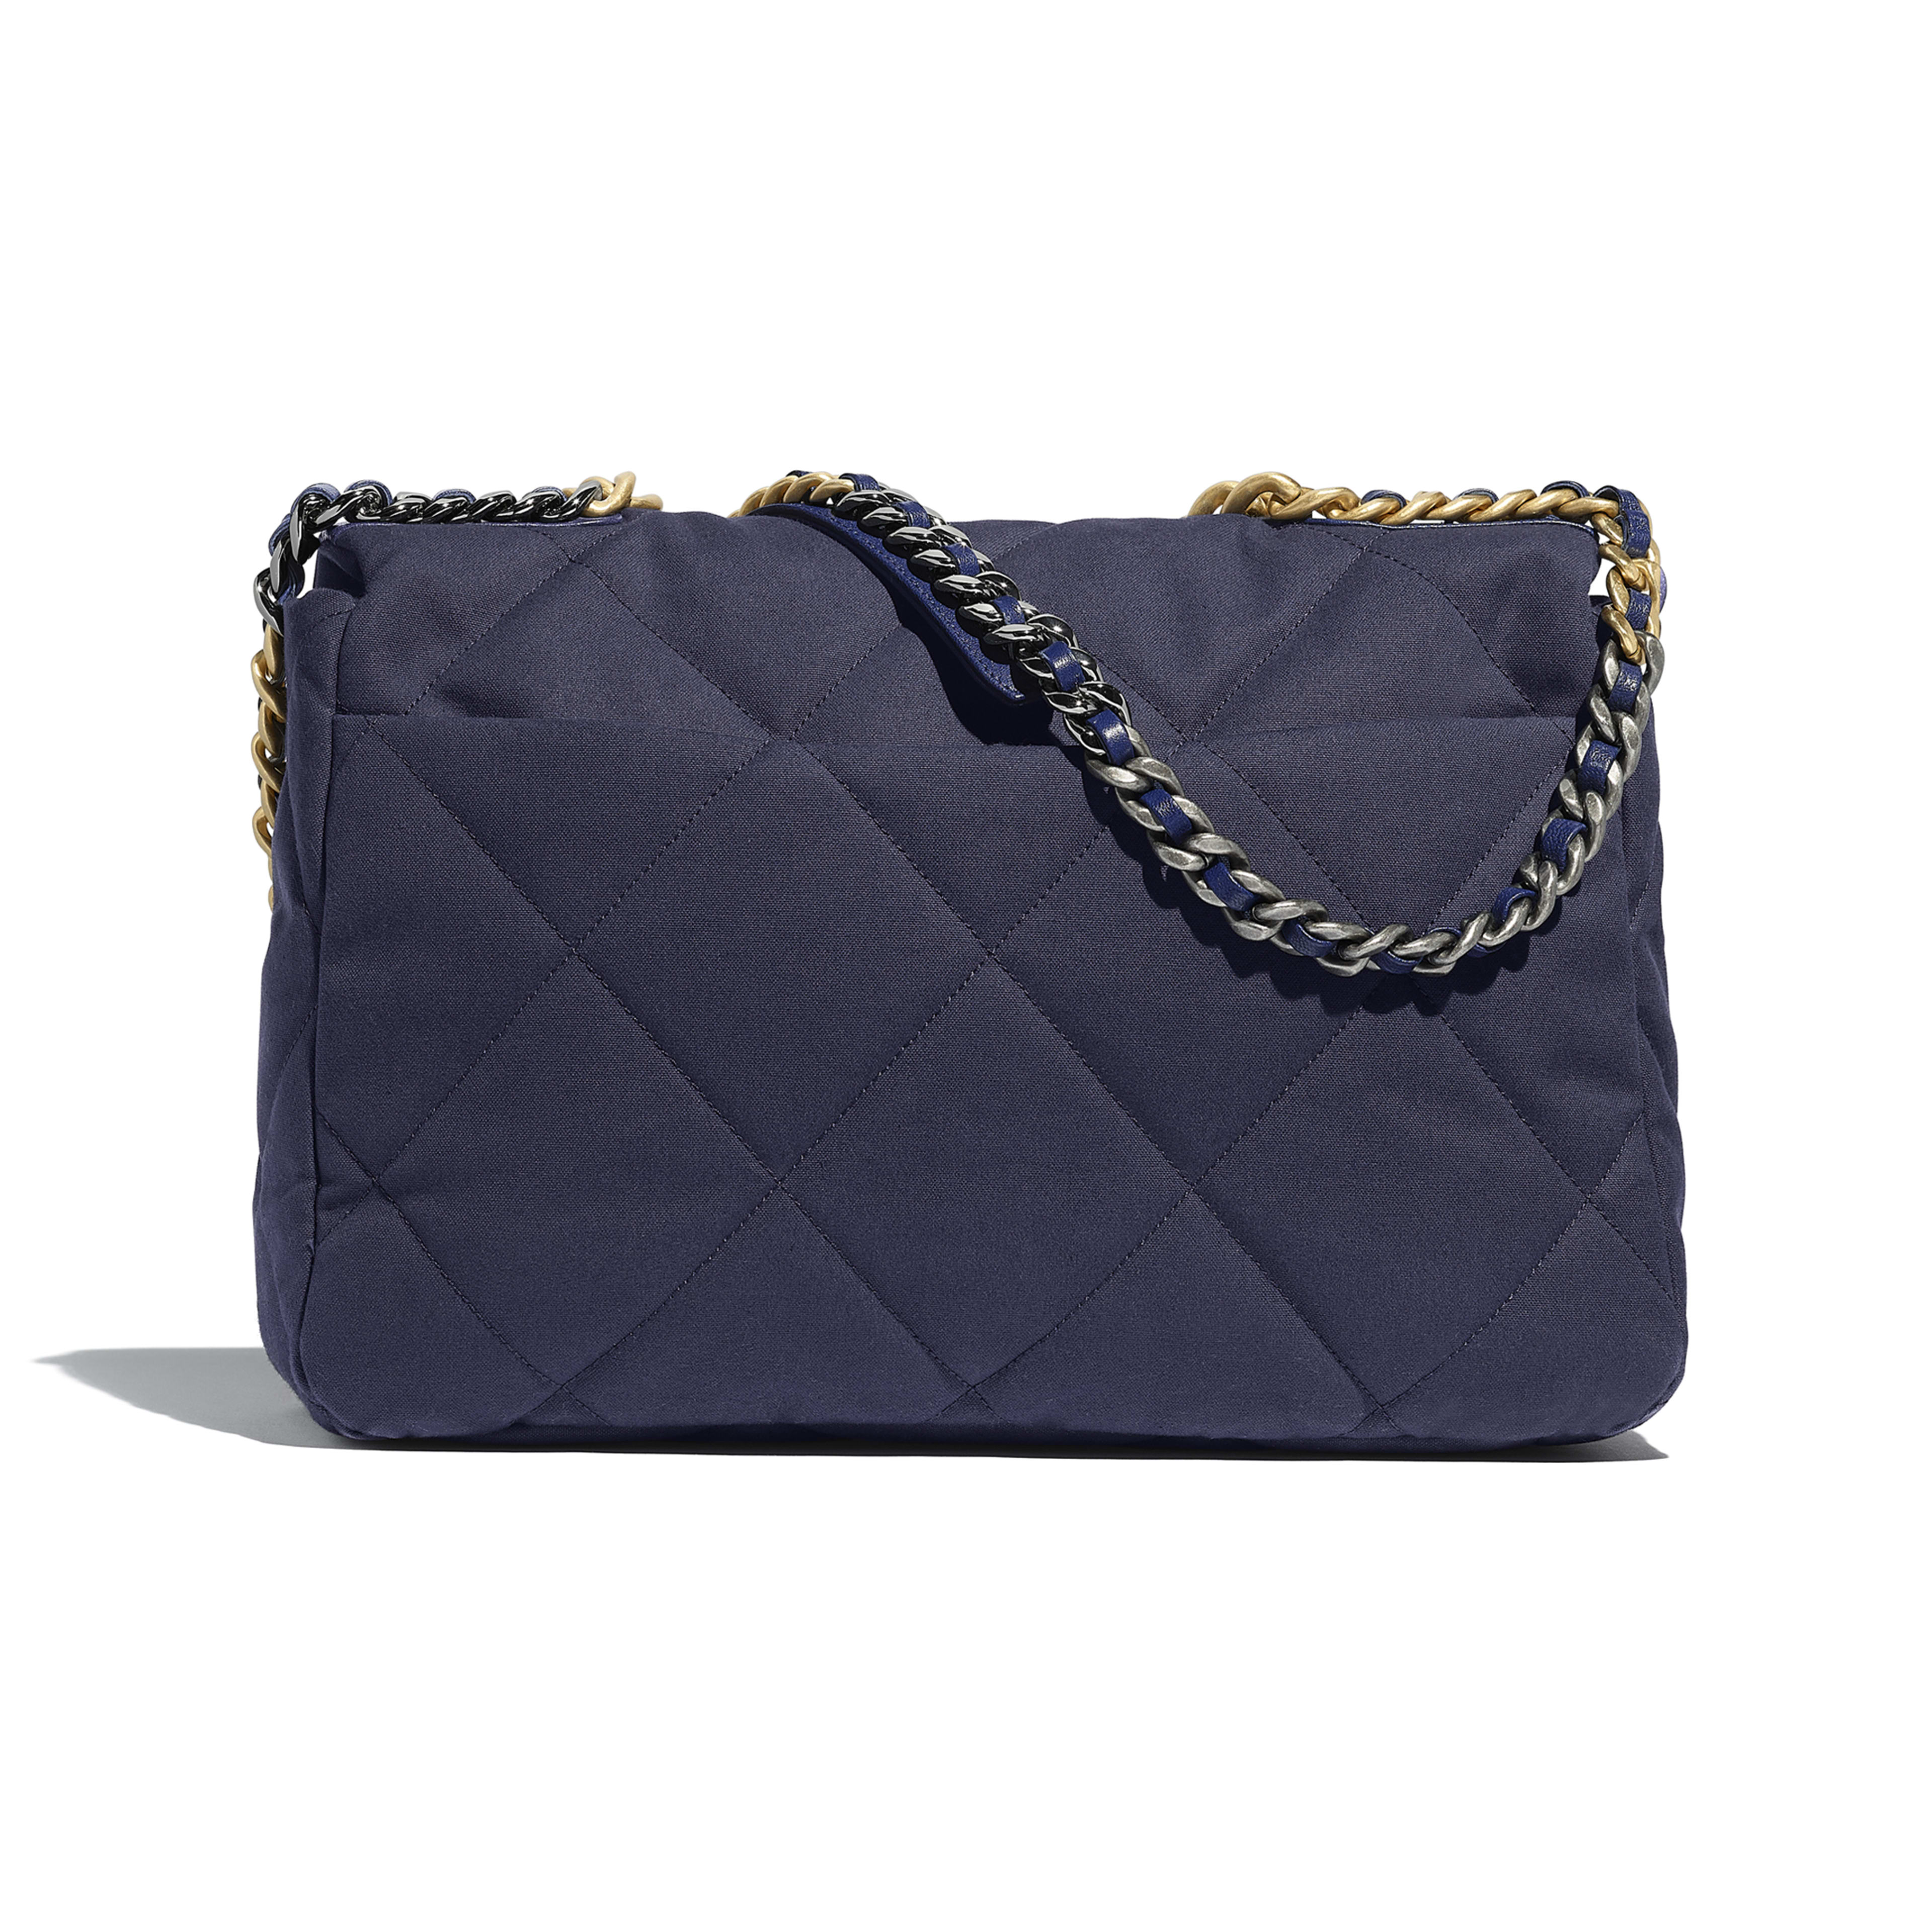 CHANEL 19 Maxi Flap Bag - Navy Blue - Cotton Canvas, Calfskin, Gold-Tone, Silver-Tone & Ruthenium-Finish Metal - Alternative view - see full sized version